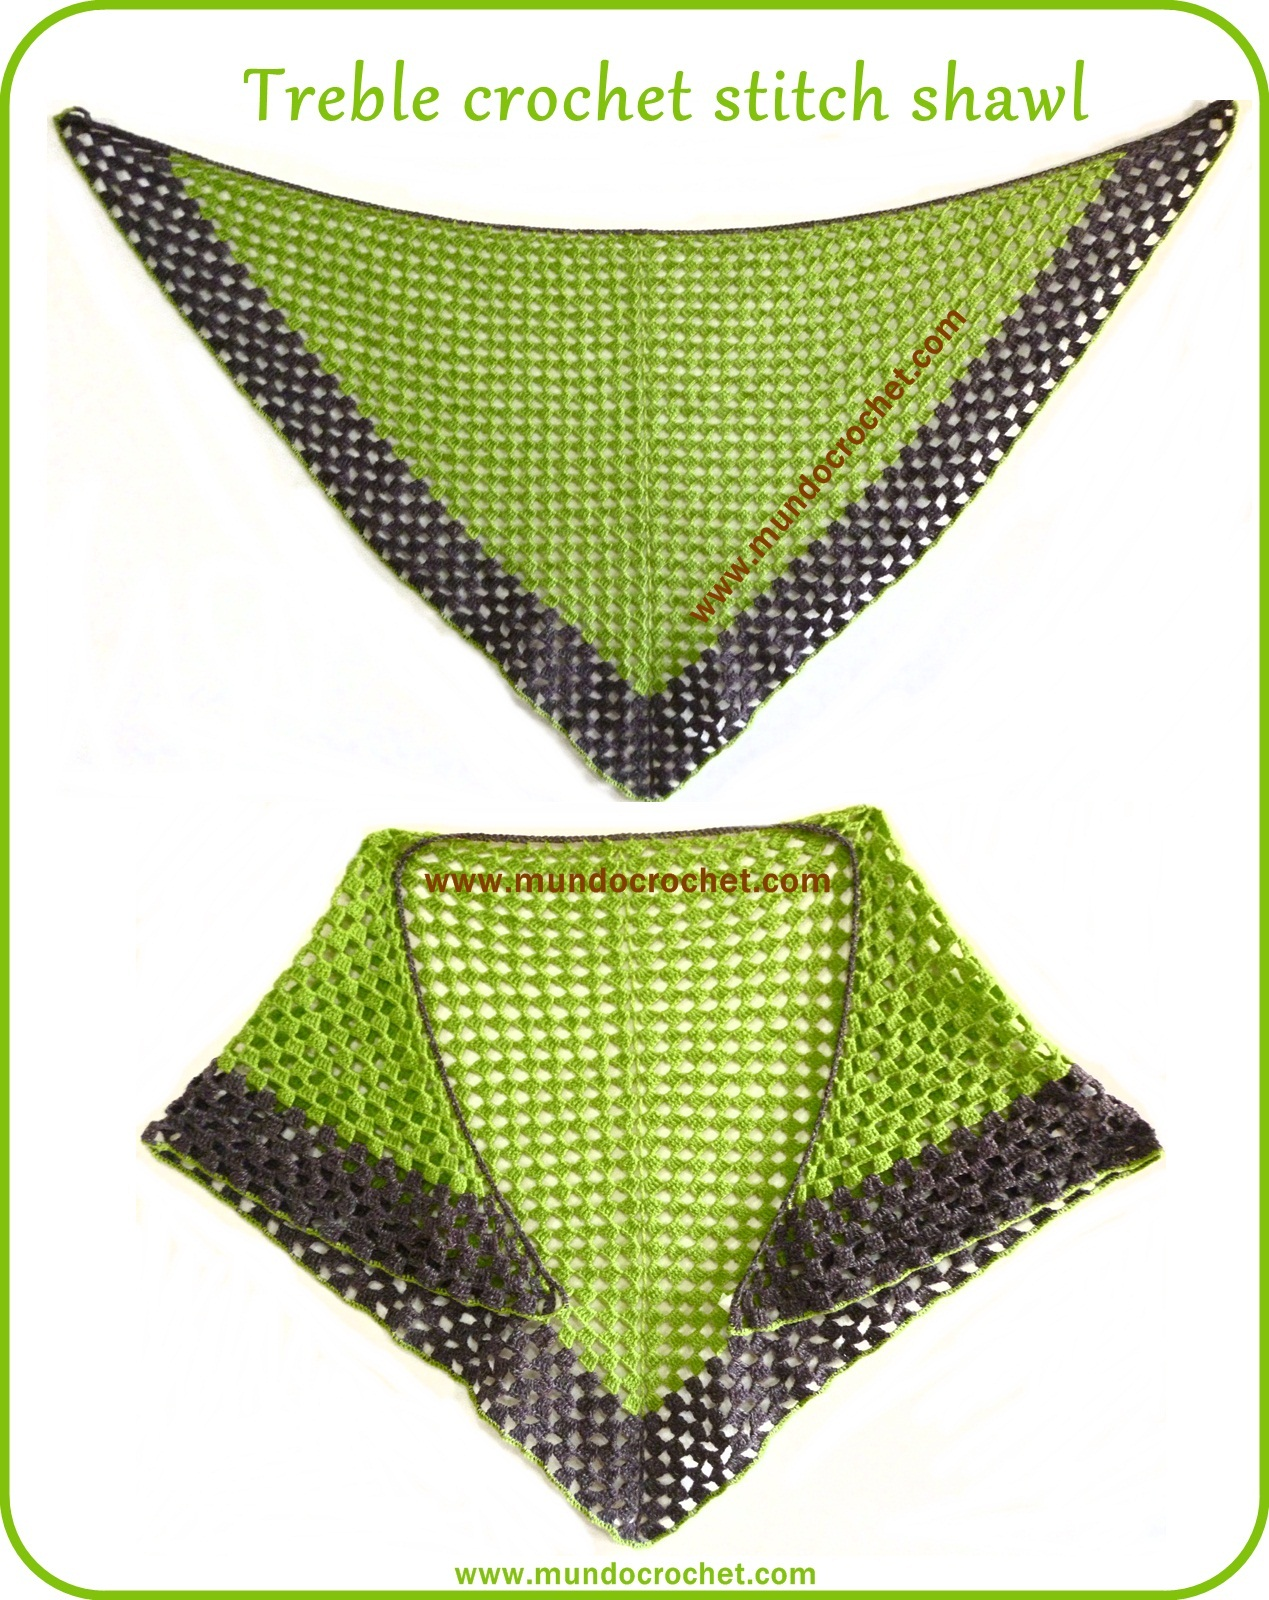 Chal verde fotoeng in this post i want to show you a shawl very simple to crochet its made using only two stitches chain and treble crochet its very easy and fast to ccuart Image collections